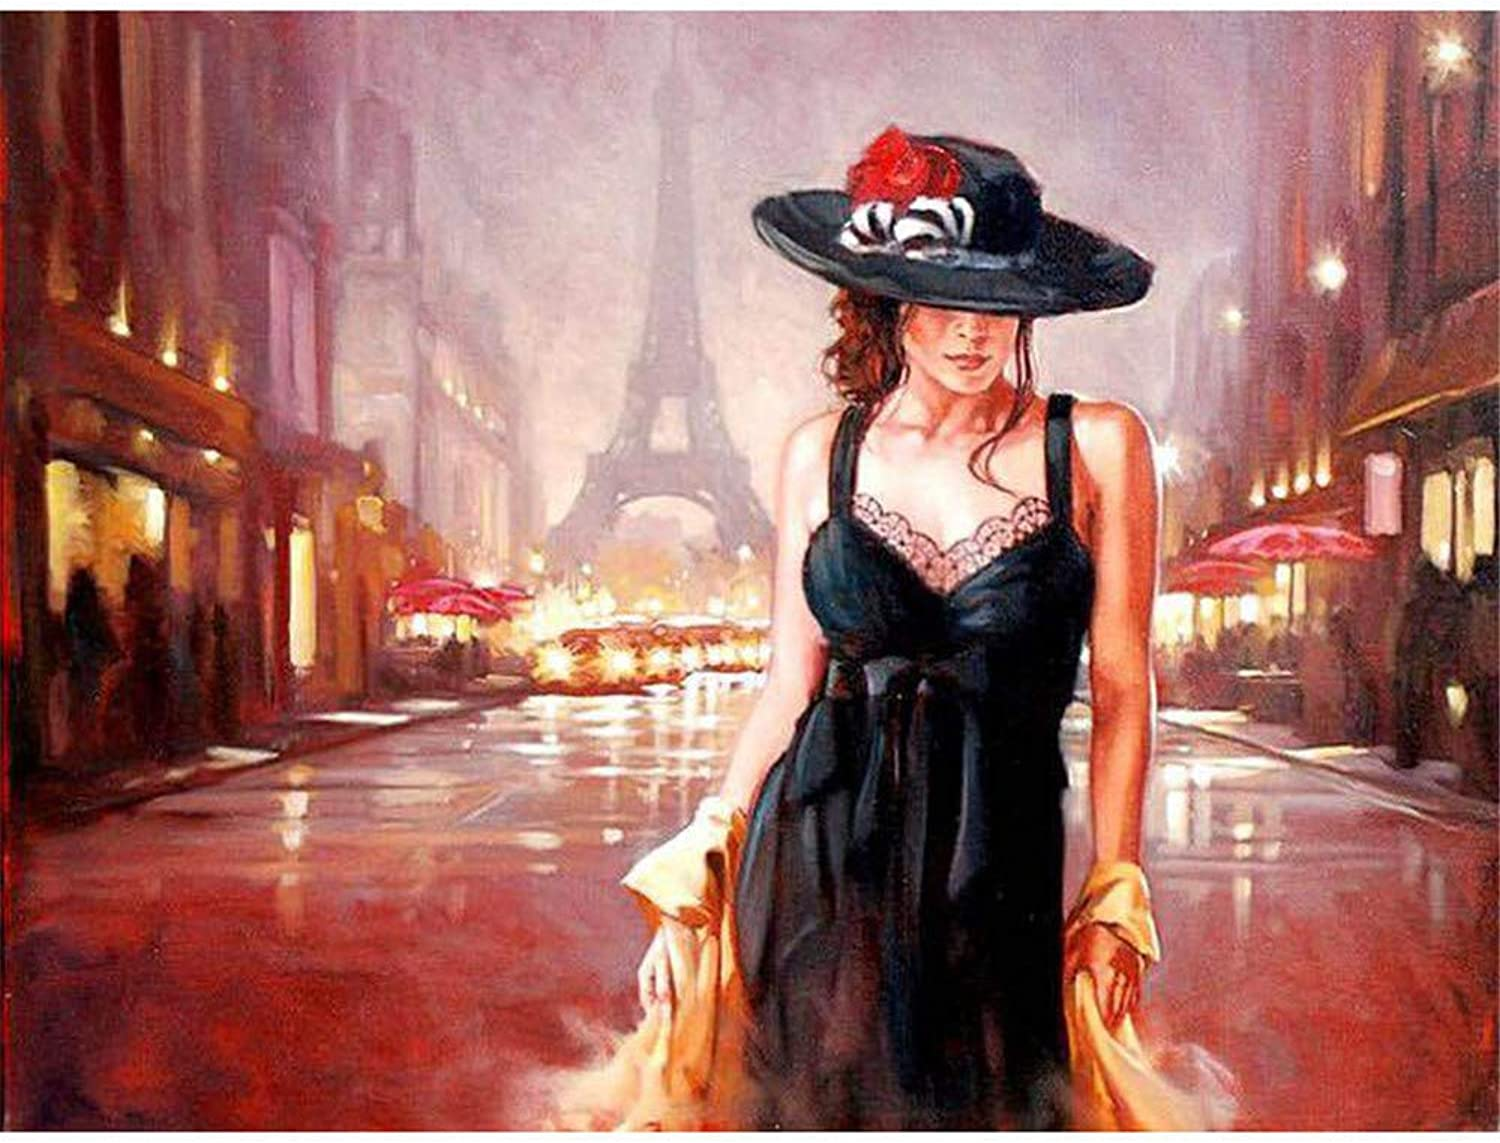 Jigsaw Puzzle 1000 Piece Street Girl in Paris Classic Puzzle DIY Kit Wooden Toy Unique Gift Home Decor